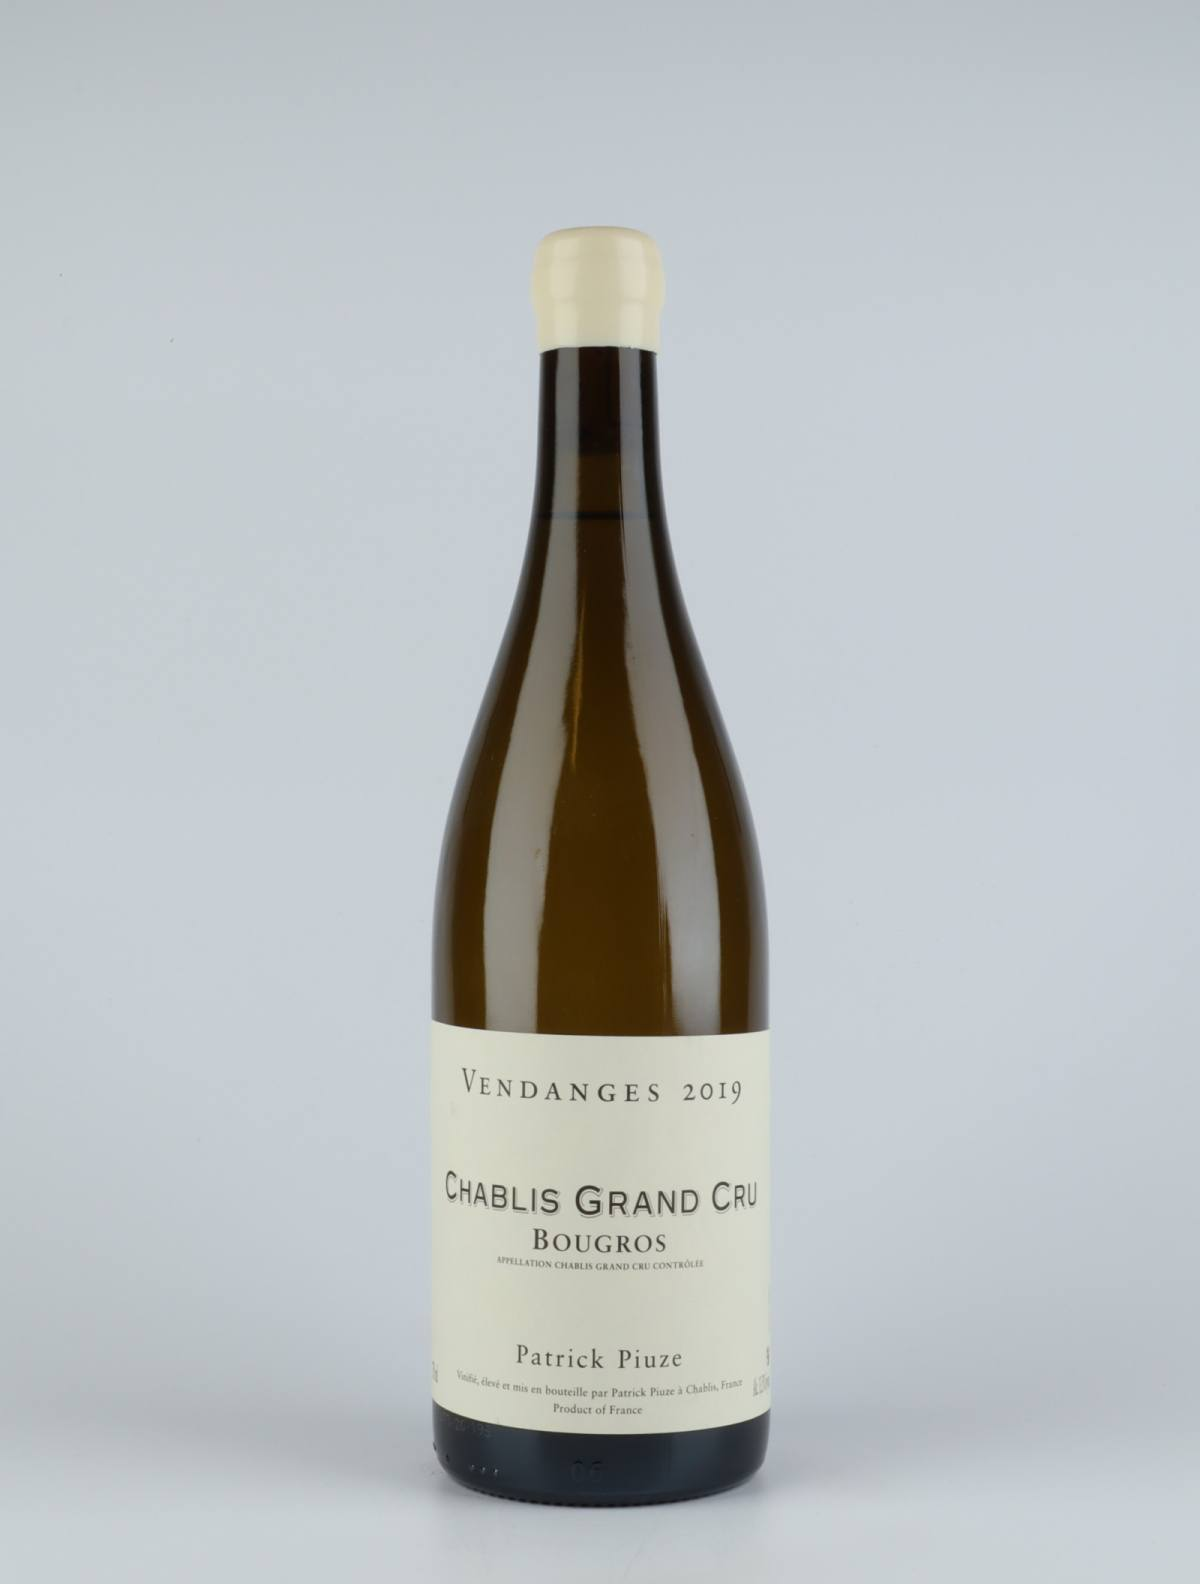 Chablis Grand Cru - Bougros